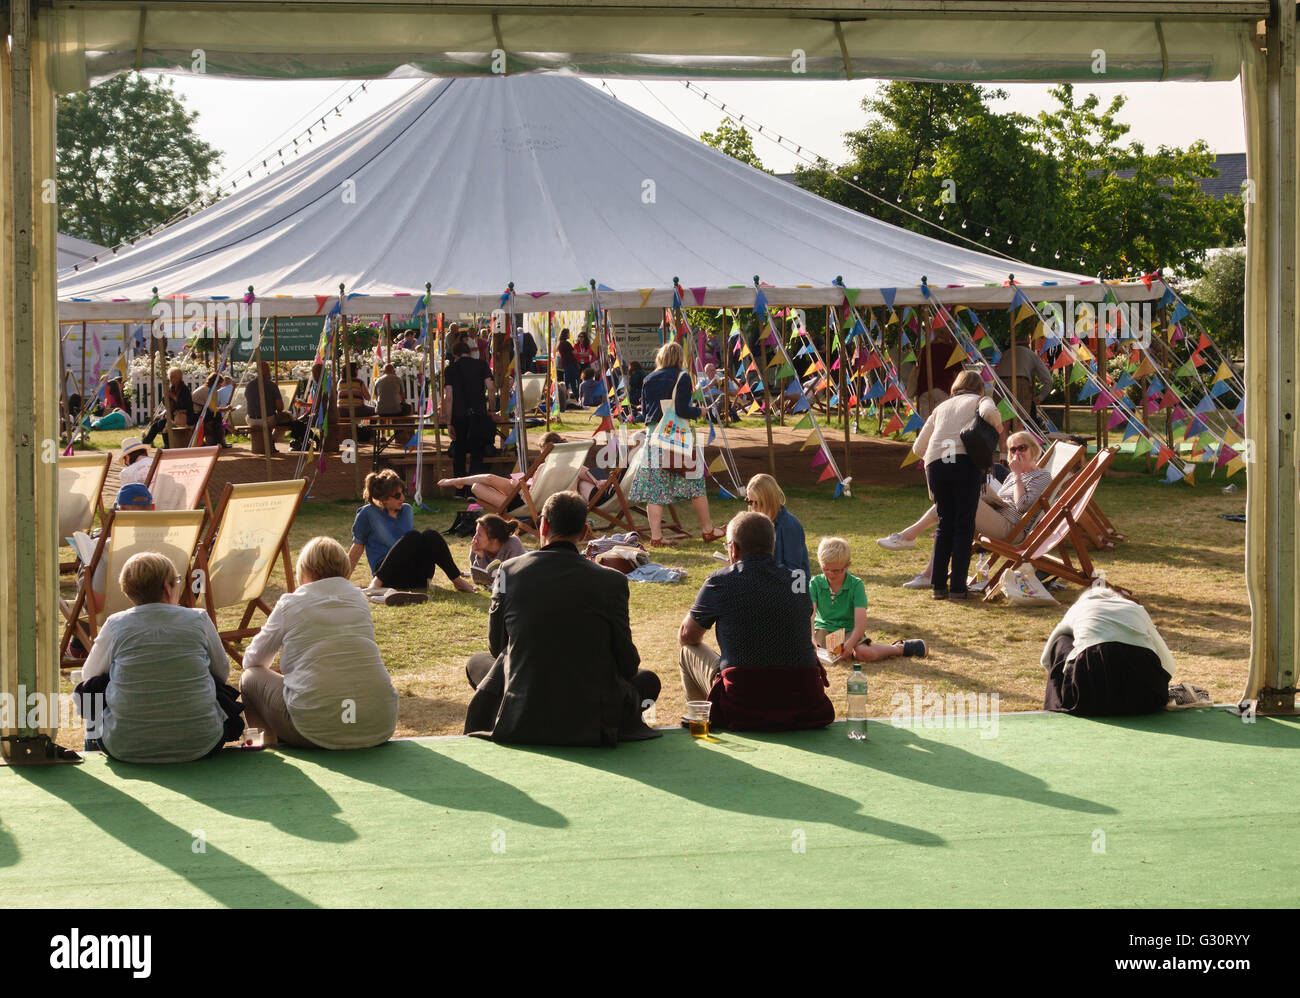 Hay-on-Wye, Wales, UK. Visitors enjoying the fine summer weather at the 2016 Hay Festival of Literature & the - Stock Image